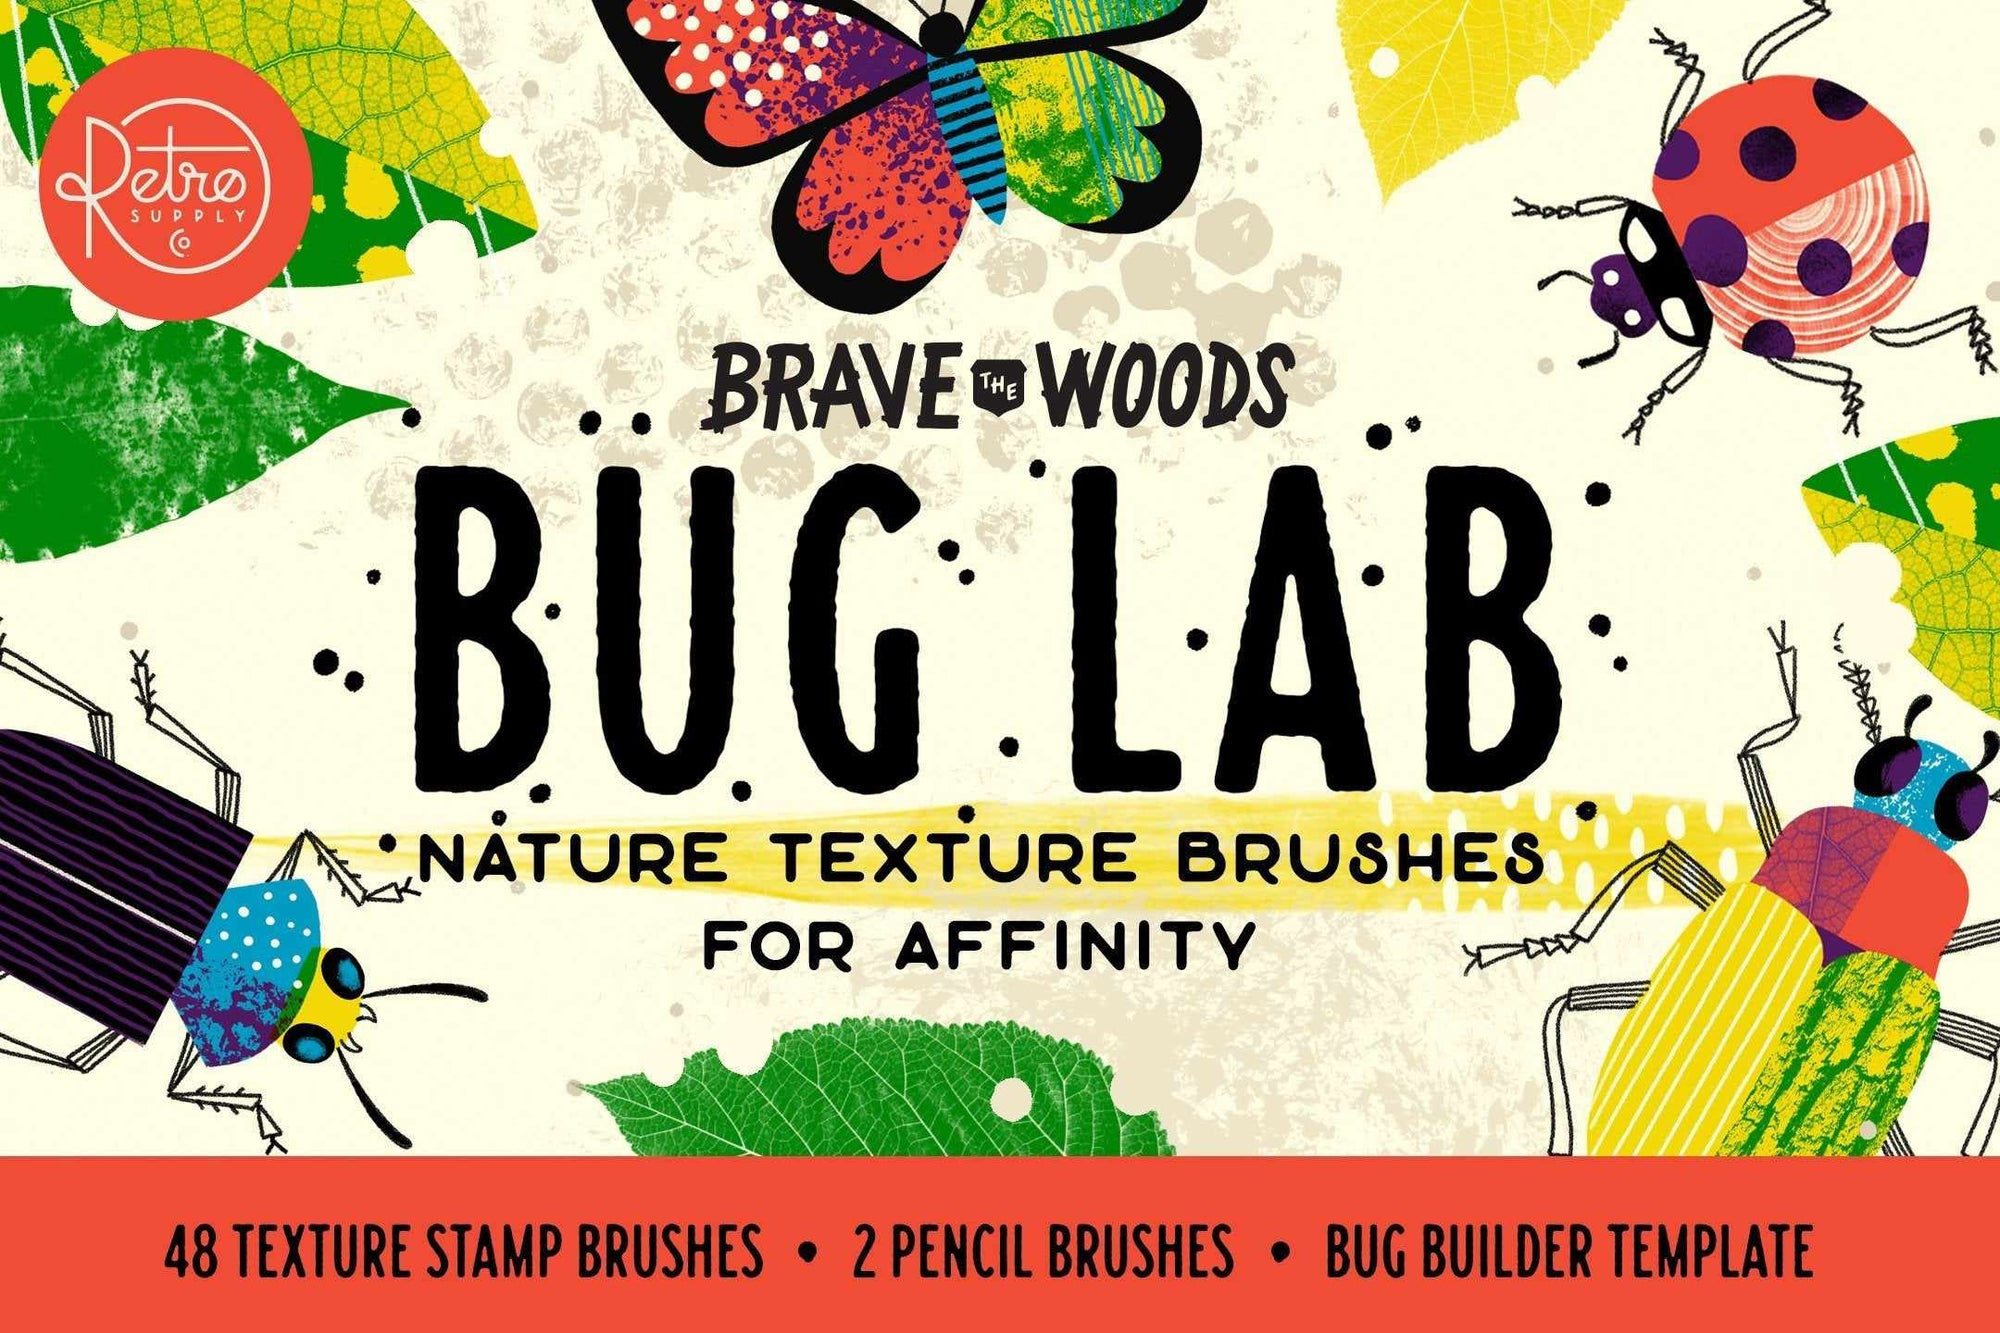 Bug Lab | Nature Texture Brushes for Affinity Brushes RetroSupply Co.